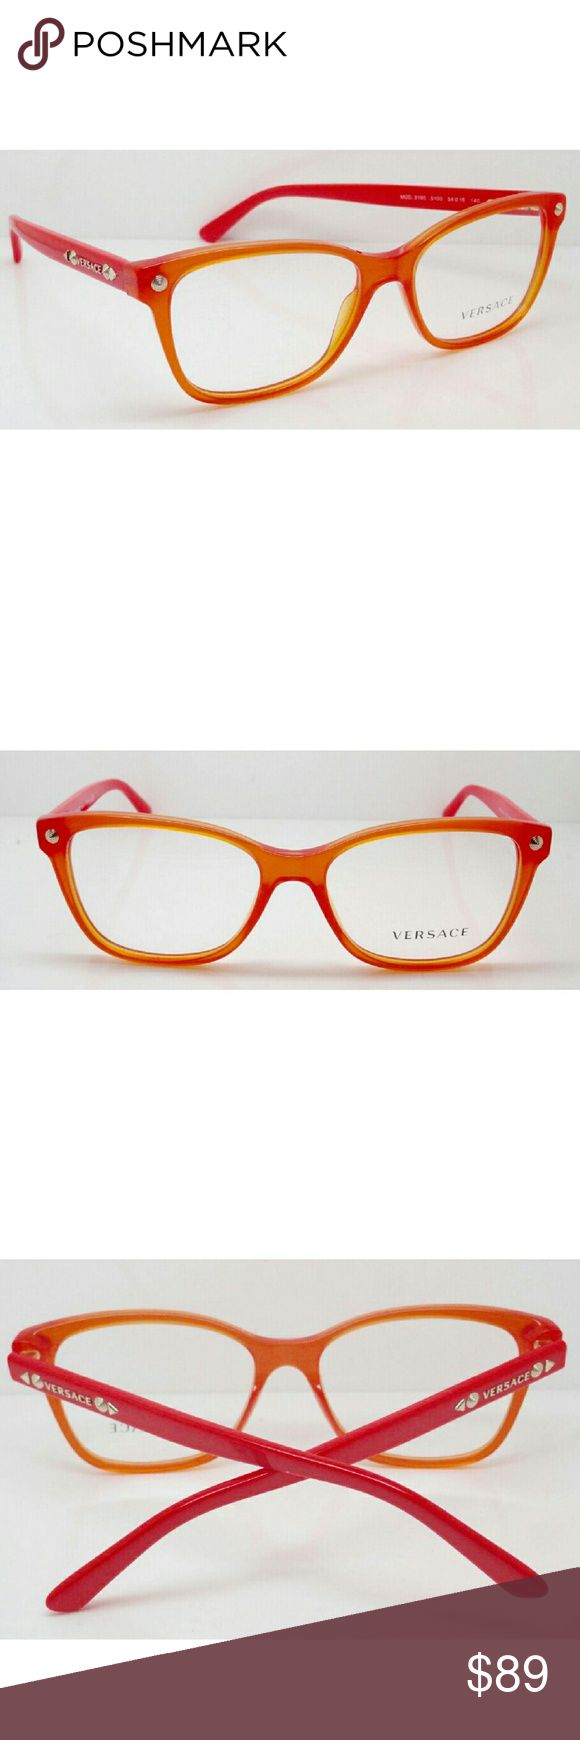 Brand new Authentic  ladies Versace eyeglasses. Brand new Authentic ladies Versace eyeglasses. Frames are transparent Opal orange with demo lenses. Temples have gold Versace wording. Frames are made in Italy. I will include with glasses our logo eyeglass case, cleaning cloth and eyeglass cleaner. Versace Accessories Glasses